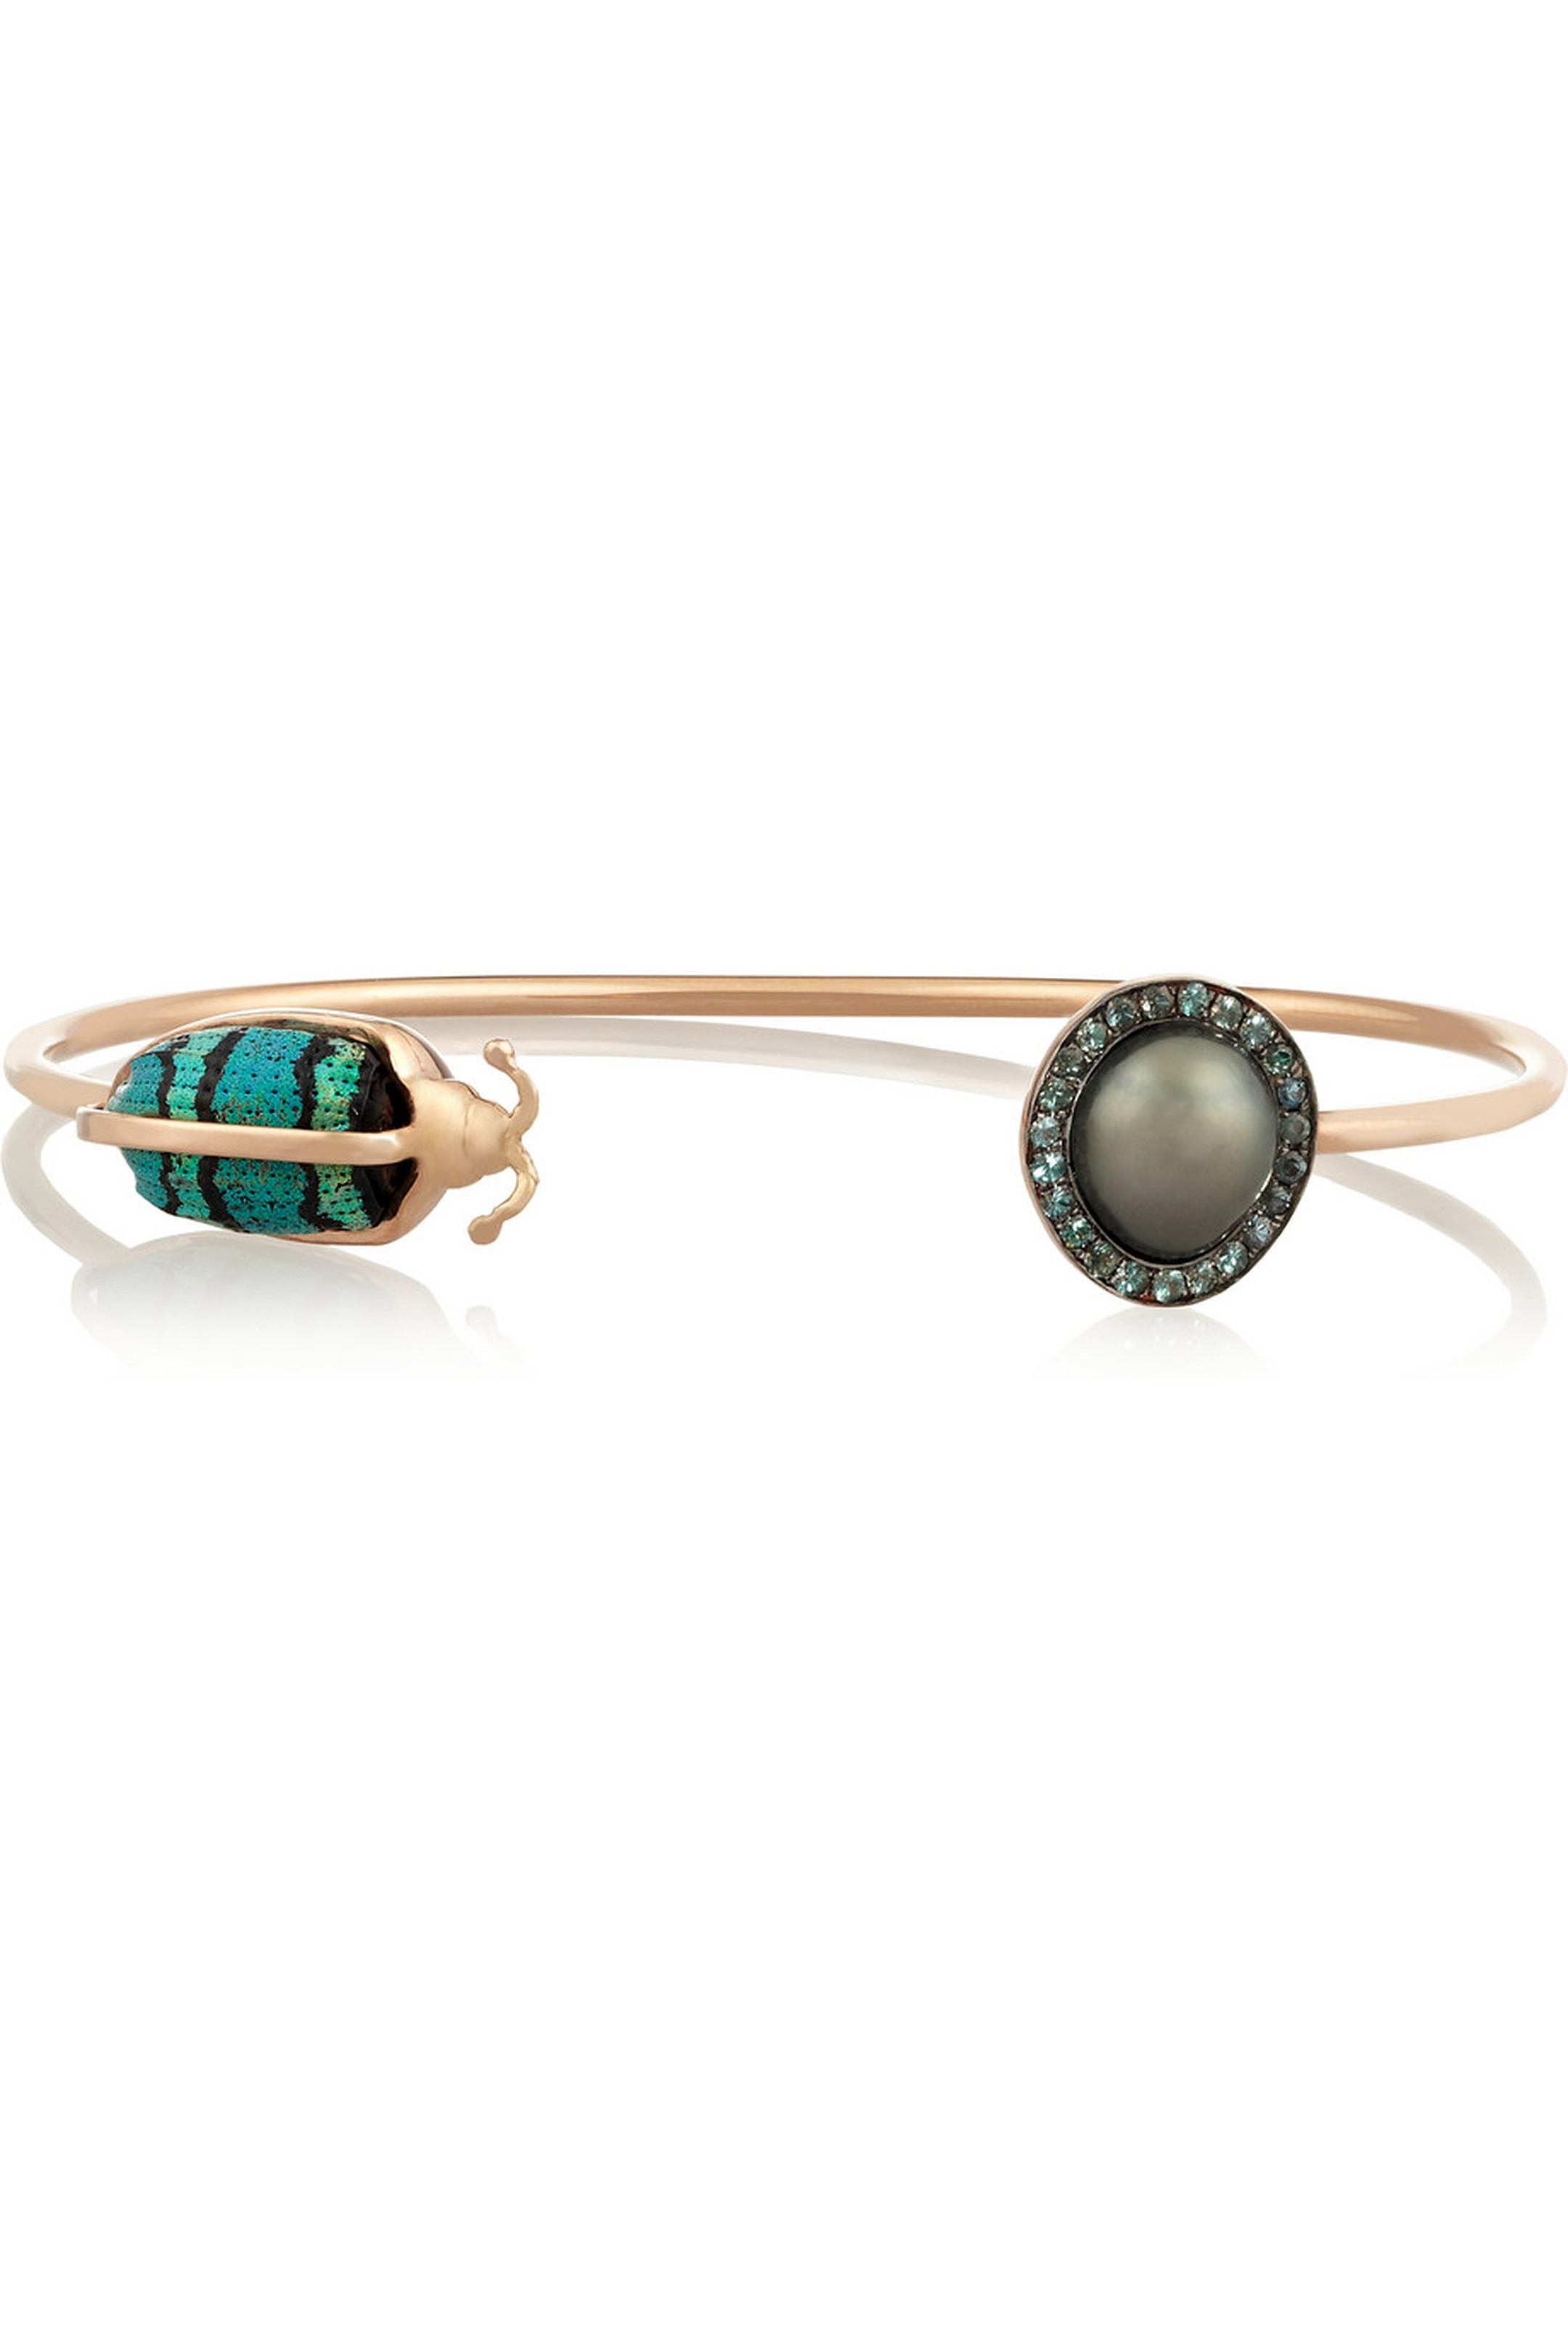 Daniela Villegas one-of-a-kind rose gold, South Sea pearl, garnet and weevil bracelet. Available at net-a-porter.com ($6,250).